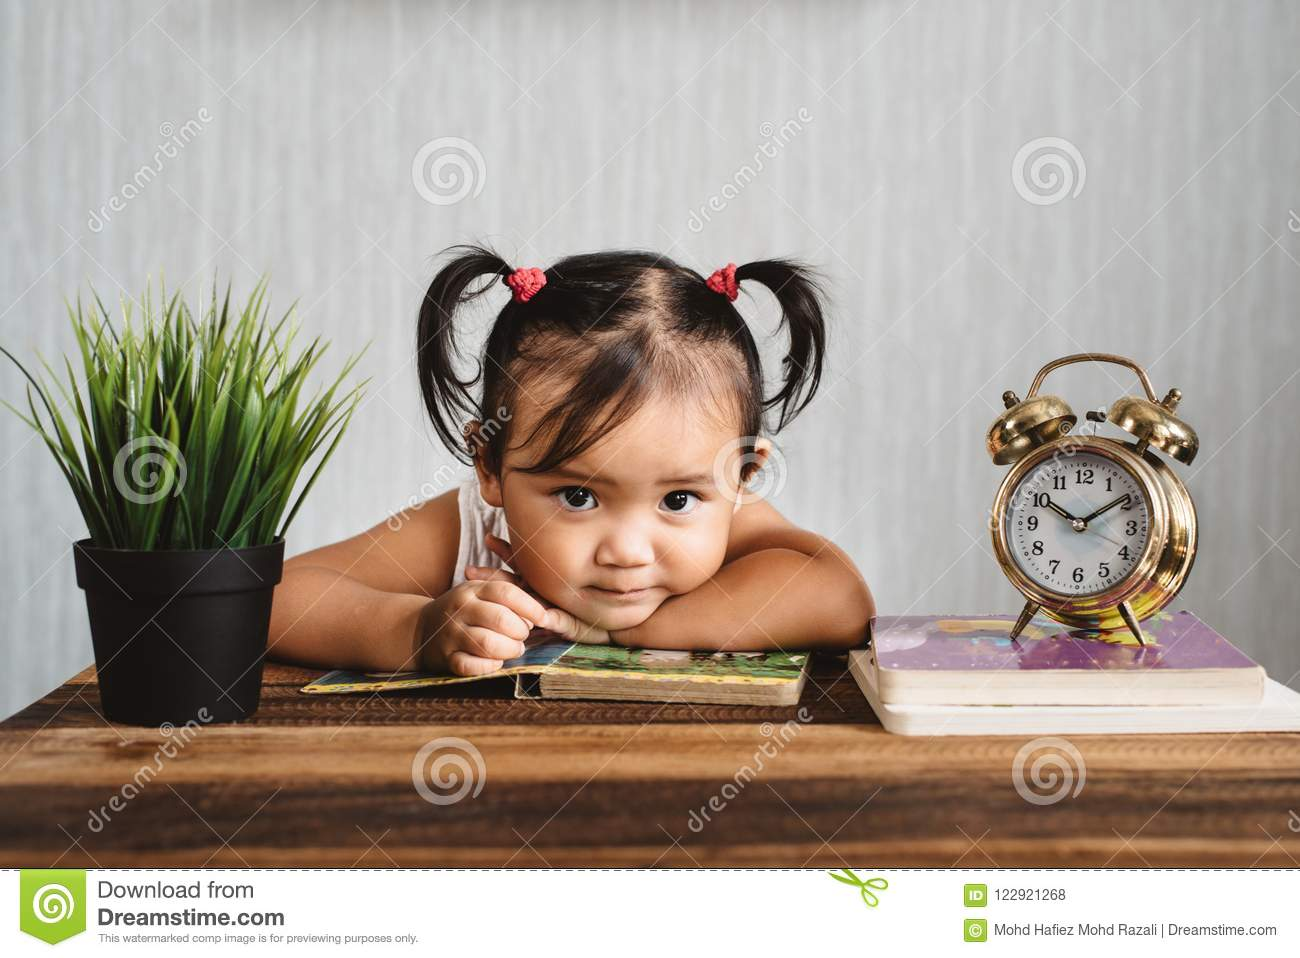 Cute Little Asian Baby Toddler Girl Looking At Camera While